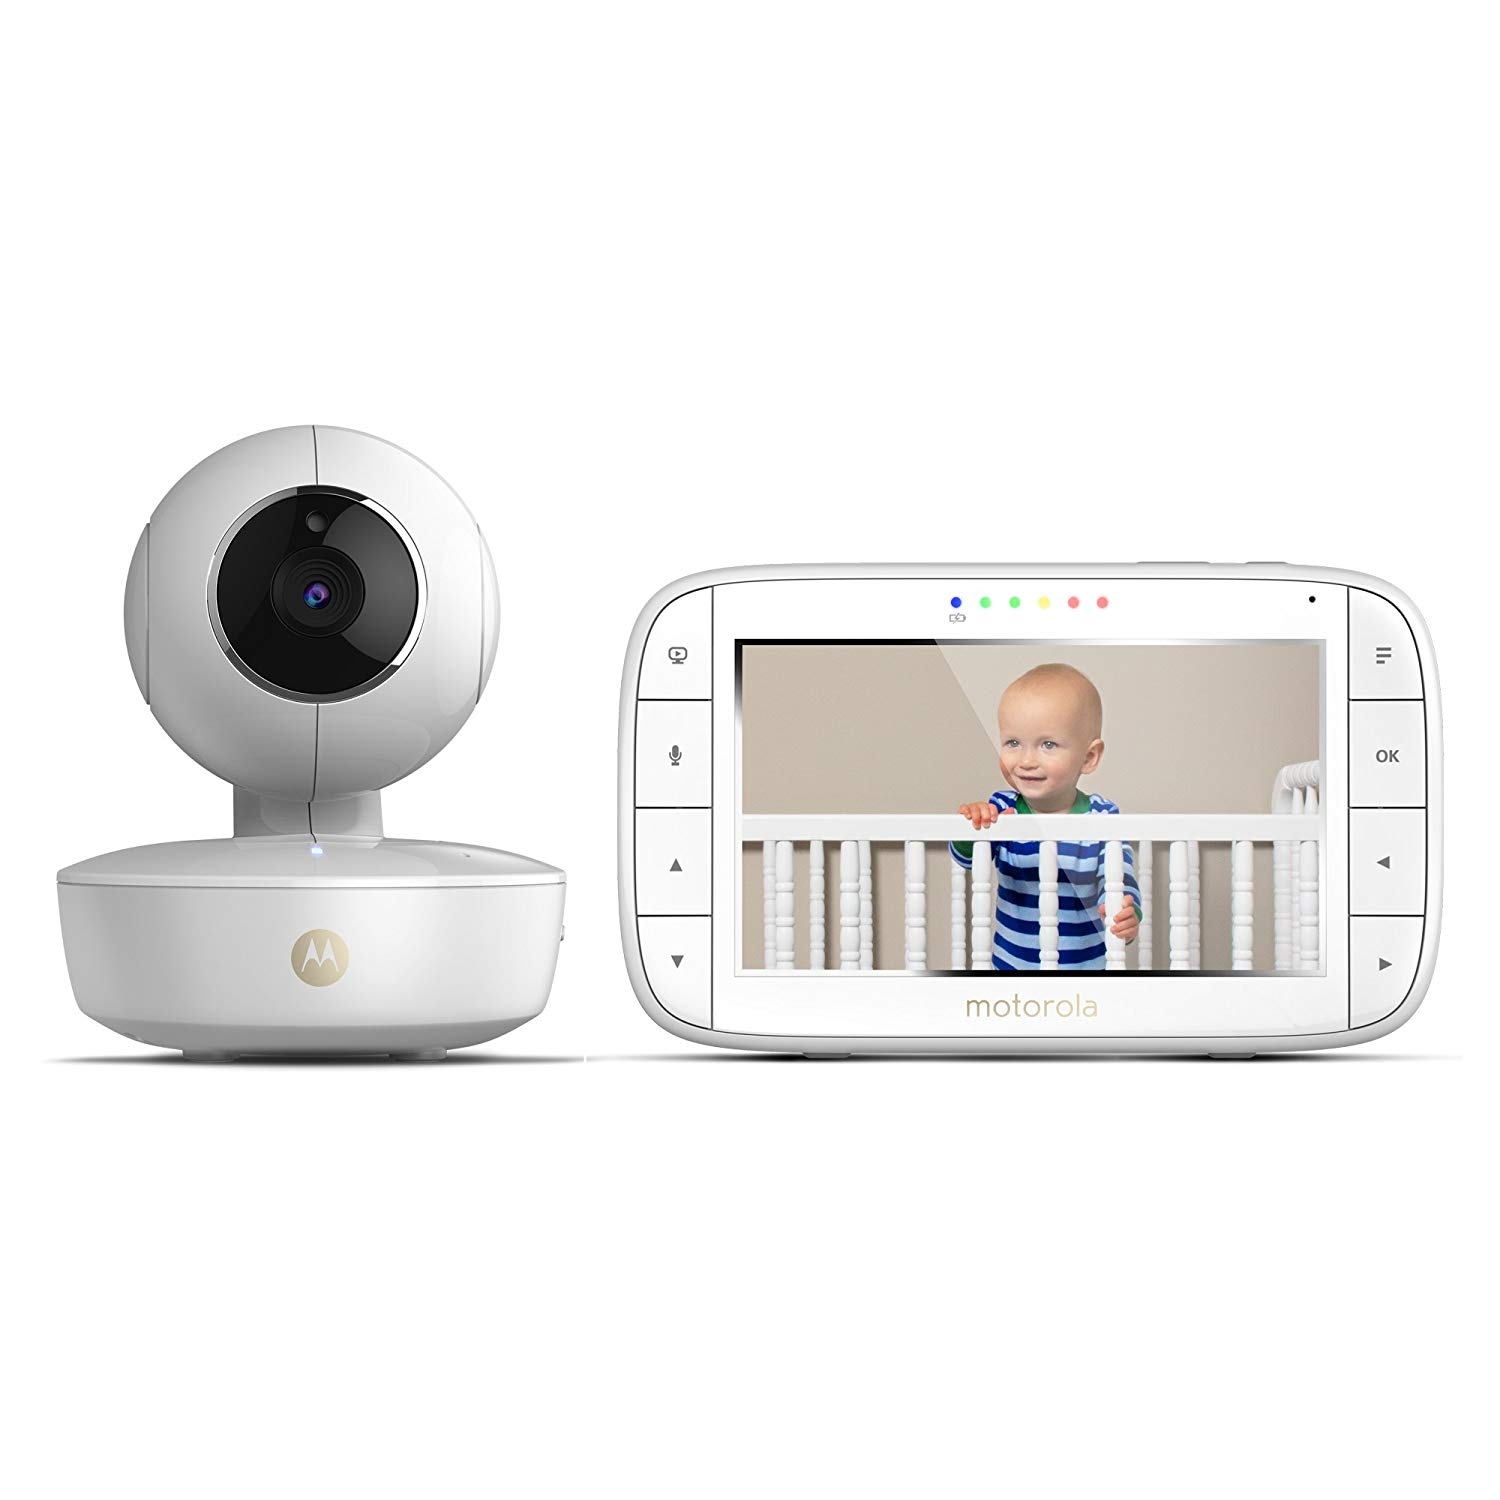 Motorola MBP36XL 5 inch Portable Video Baby Monitor